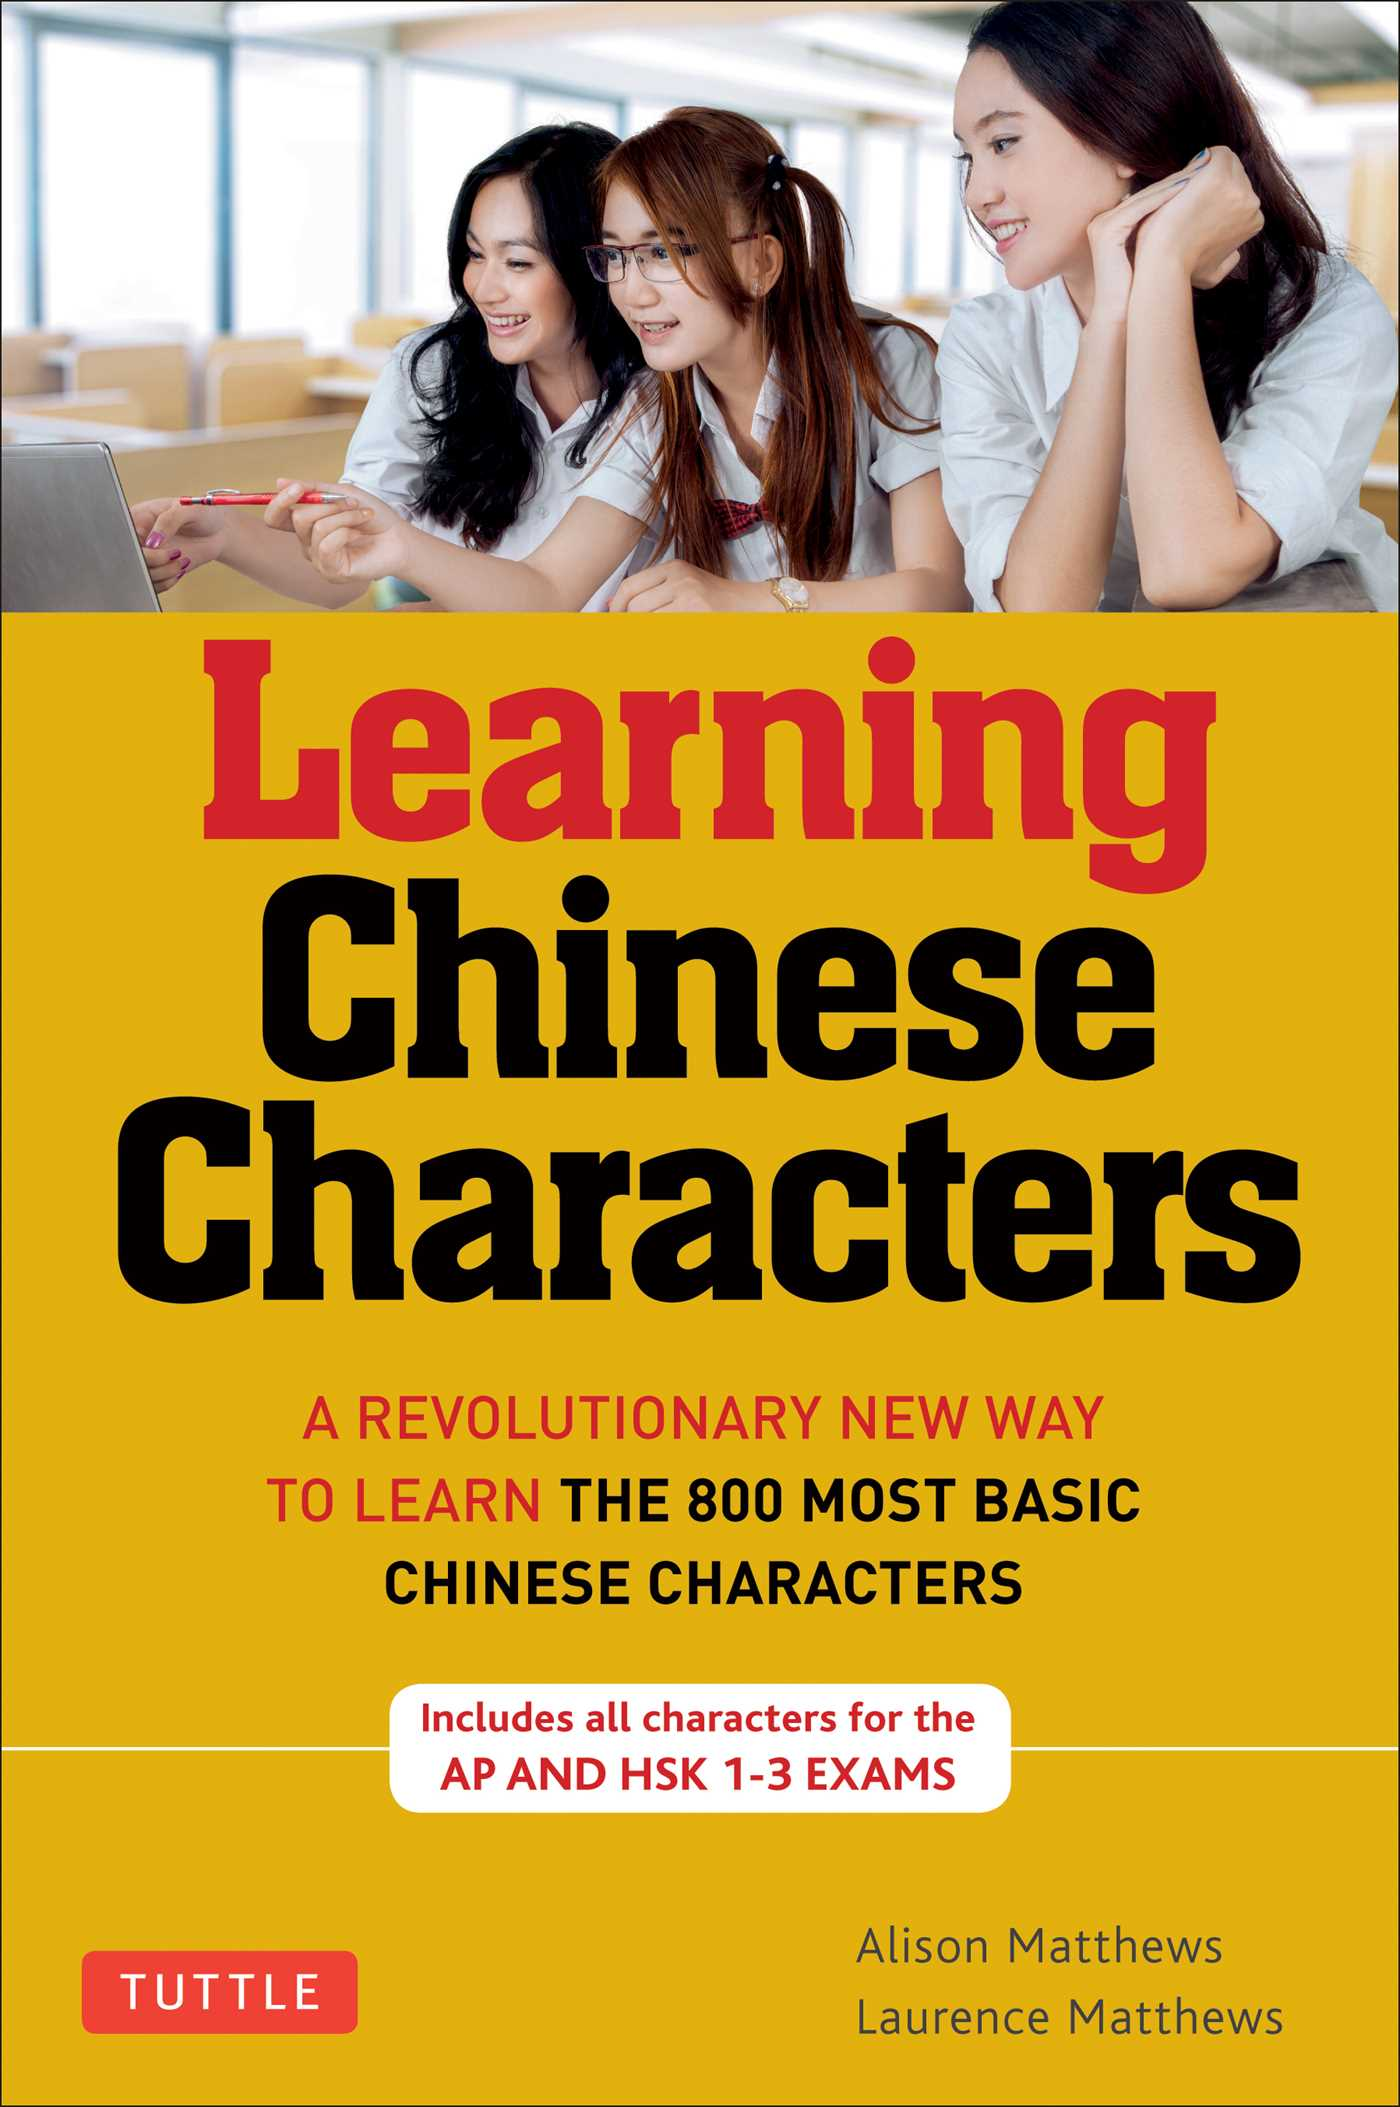 Tuttle learning chinese characters 9780804838160 hr